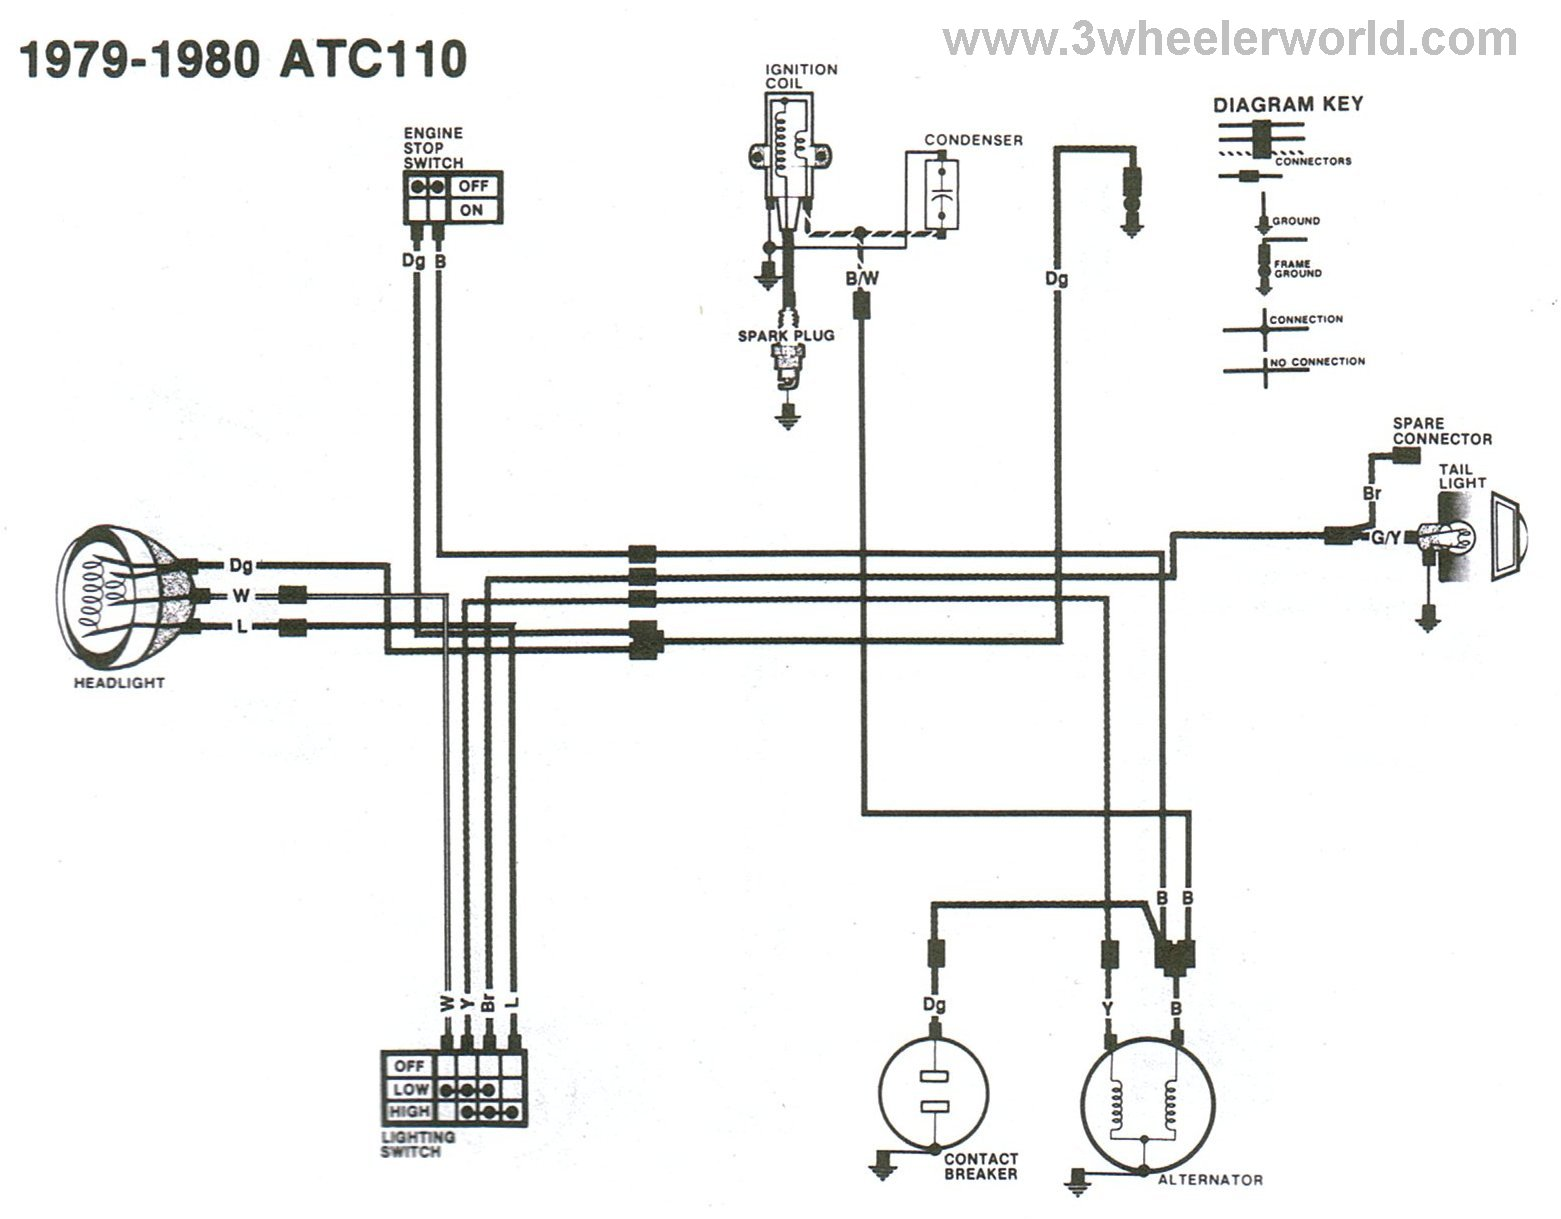 ATC110x79Thru80 3 wheeler world tech help honda wiring diagrams lt250r wiring diagram at readyjetset.co